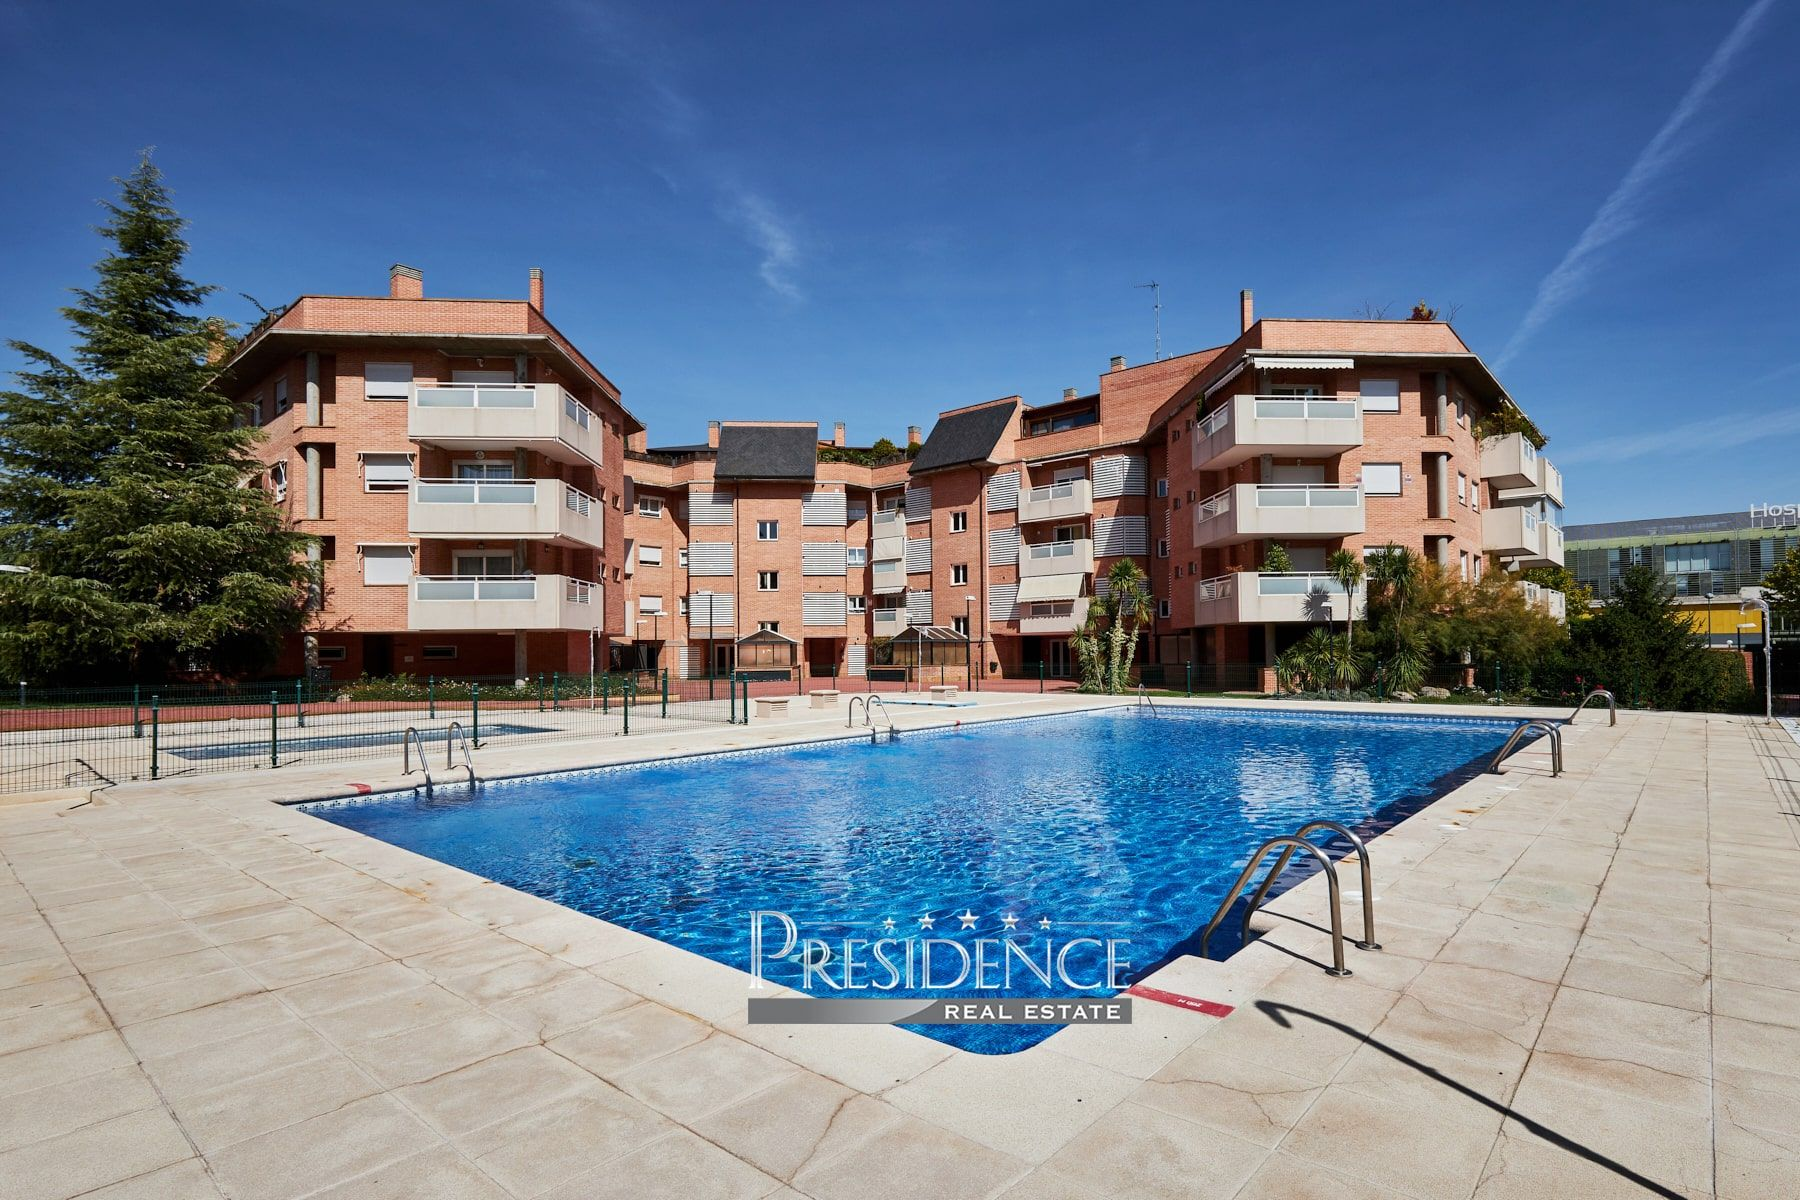 Flat in Madrid, A-6 (NOROESTE), for rent